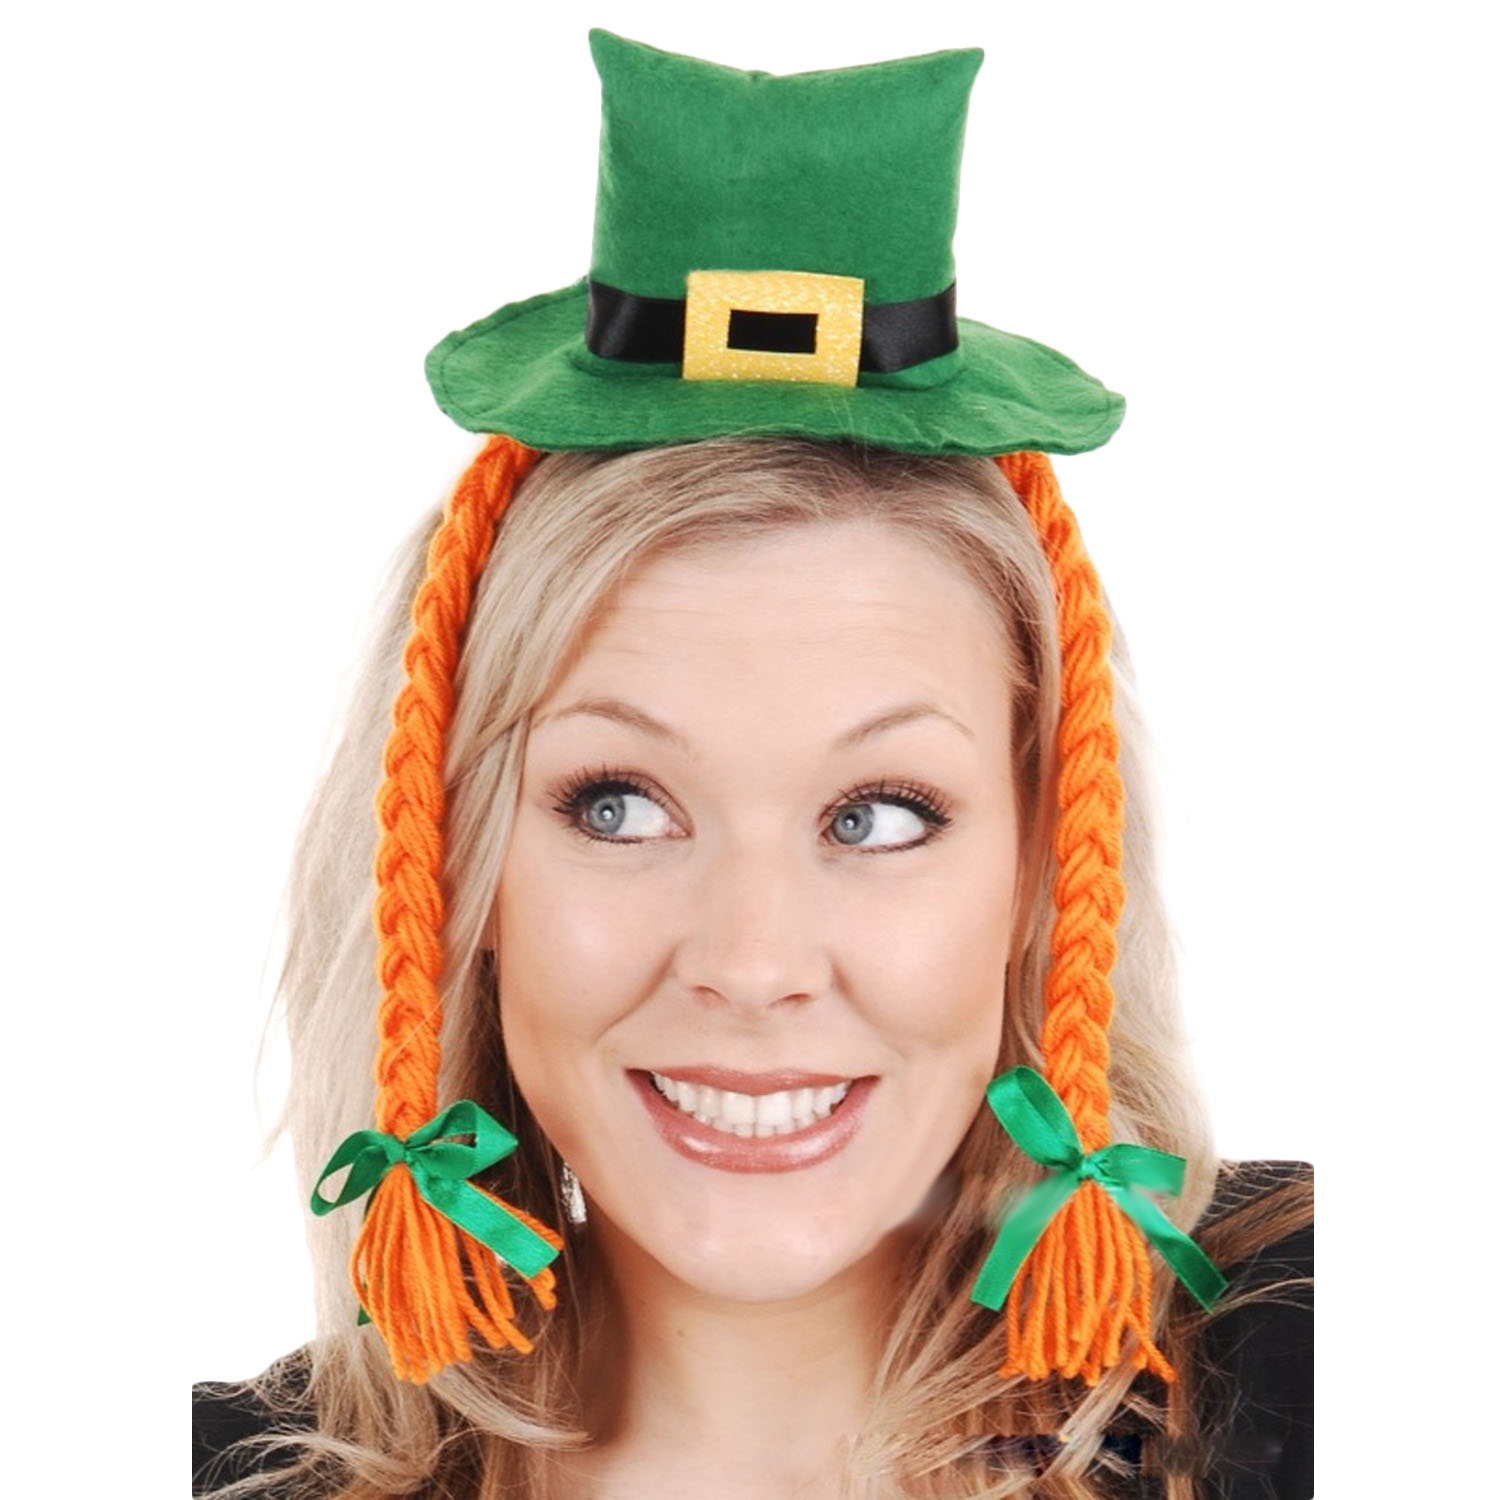 Cute Lucky Charm Green Hair Hoop Headwear Headband With Braid Decor For Irish Saint St Patricks Day Party Costume Accessories